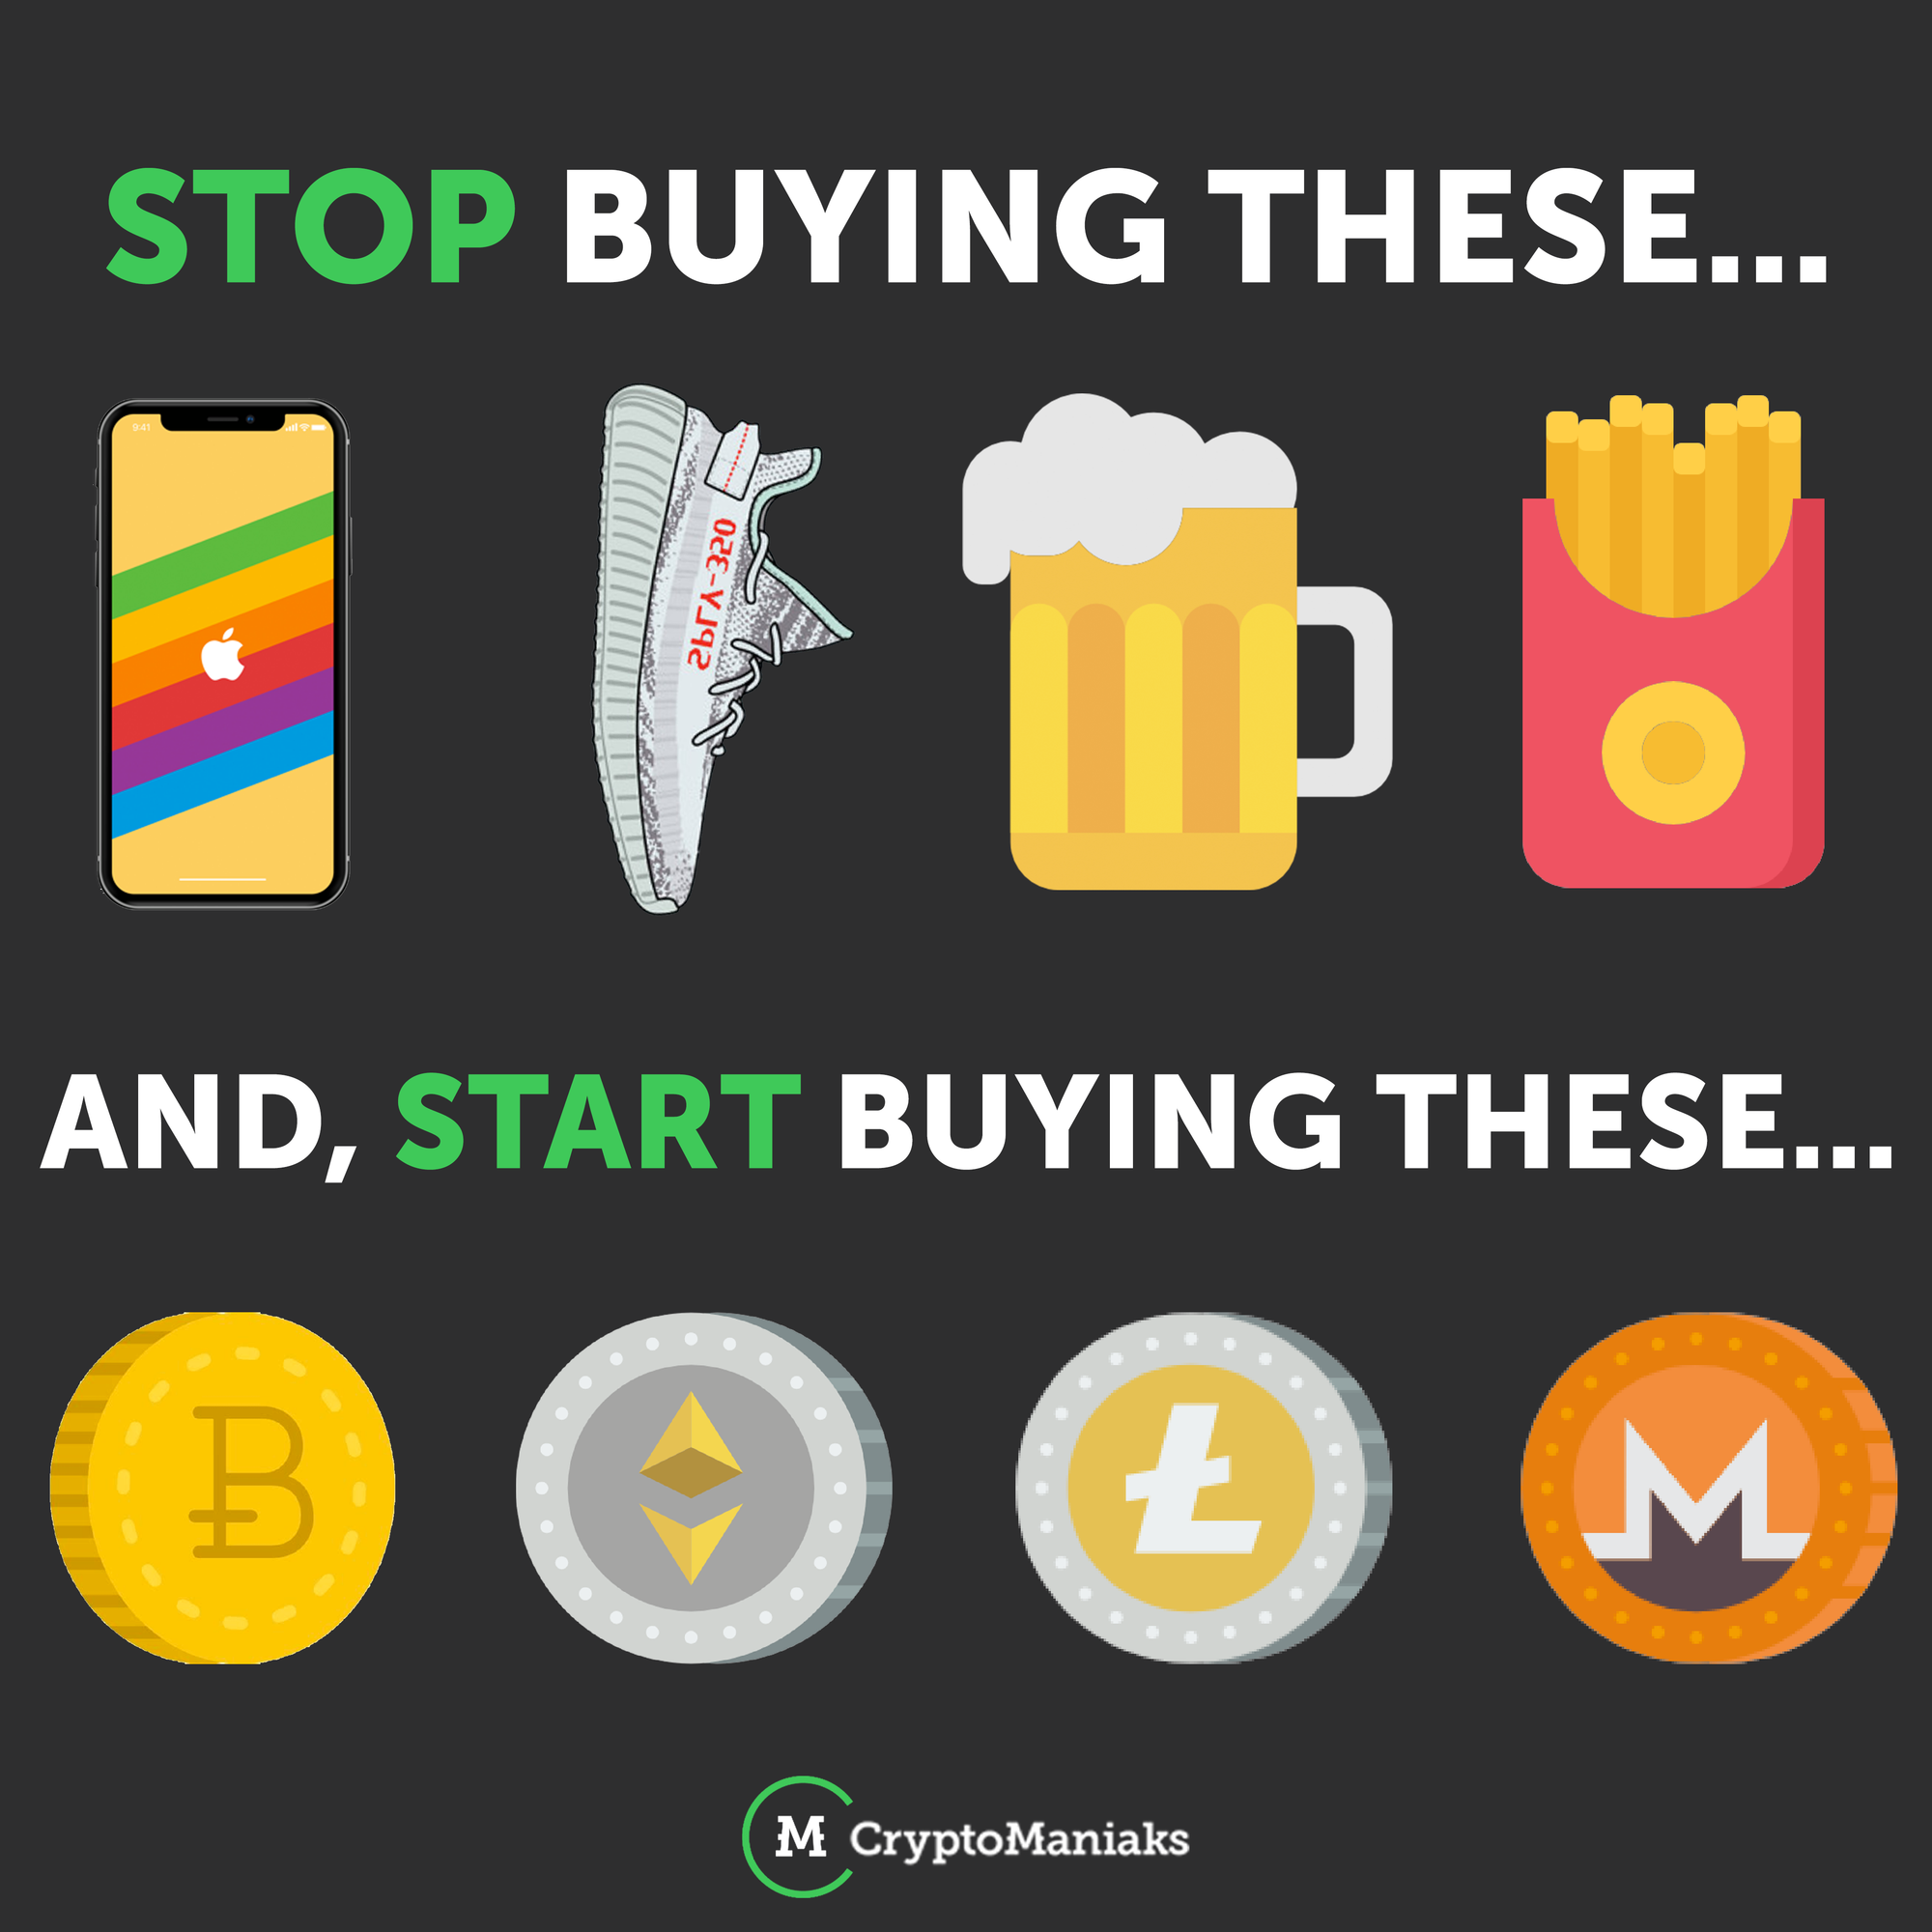 Don T Waste Your Money Invest In Your Future And Freedom Cryptocurrency Bitcoin Investing